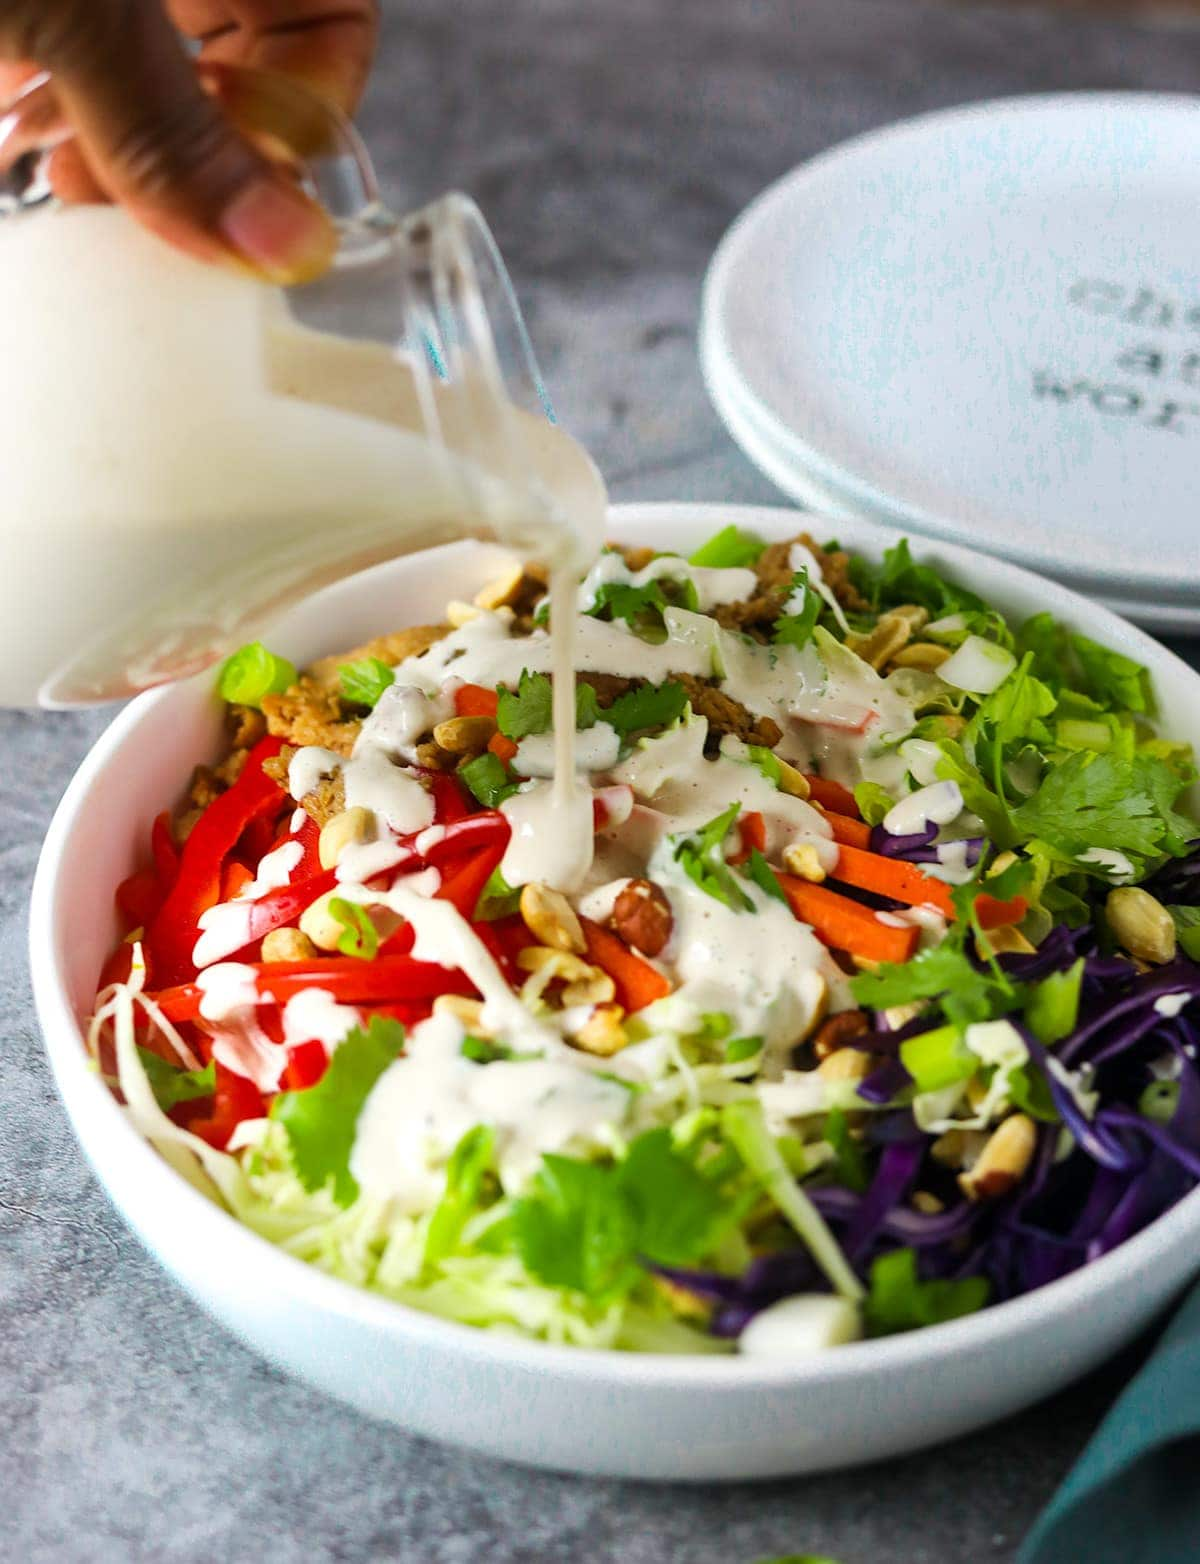 pouring salad dressing from a glass container on asian salad in a white bowl